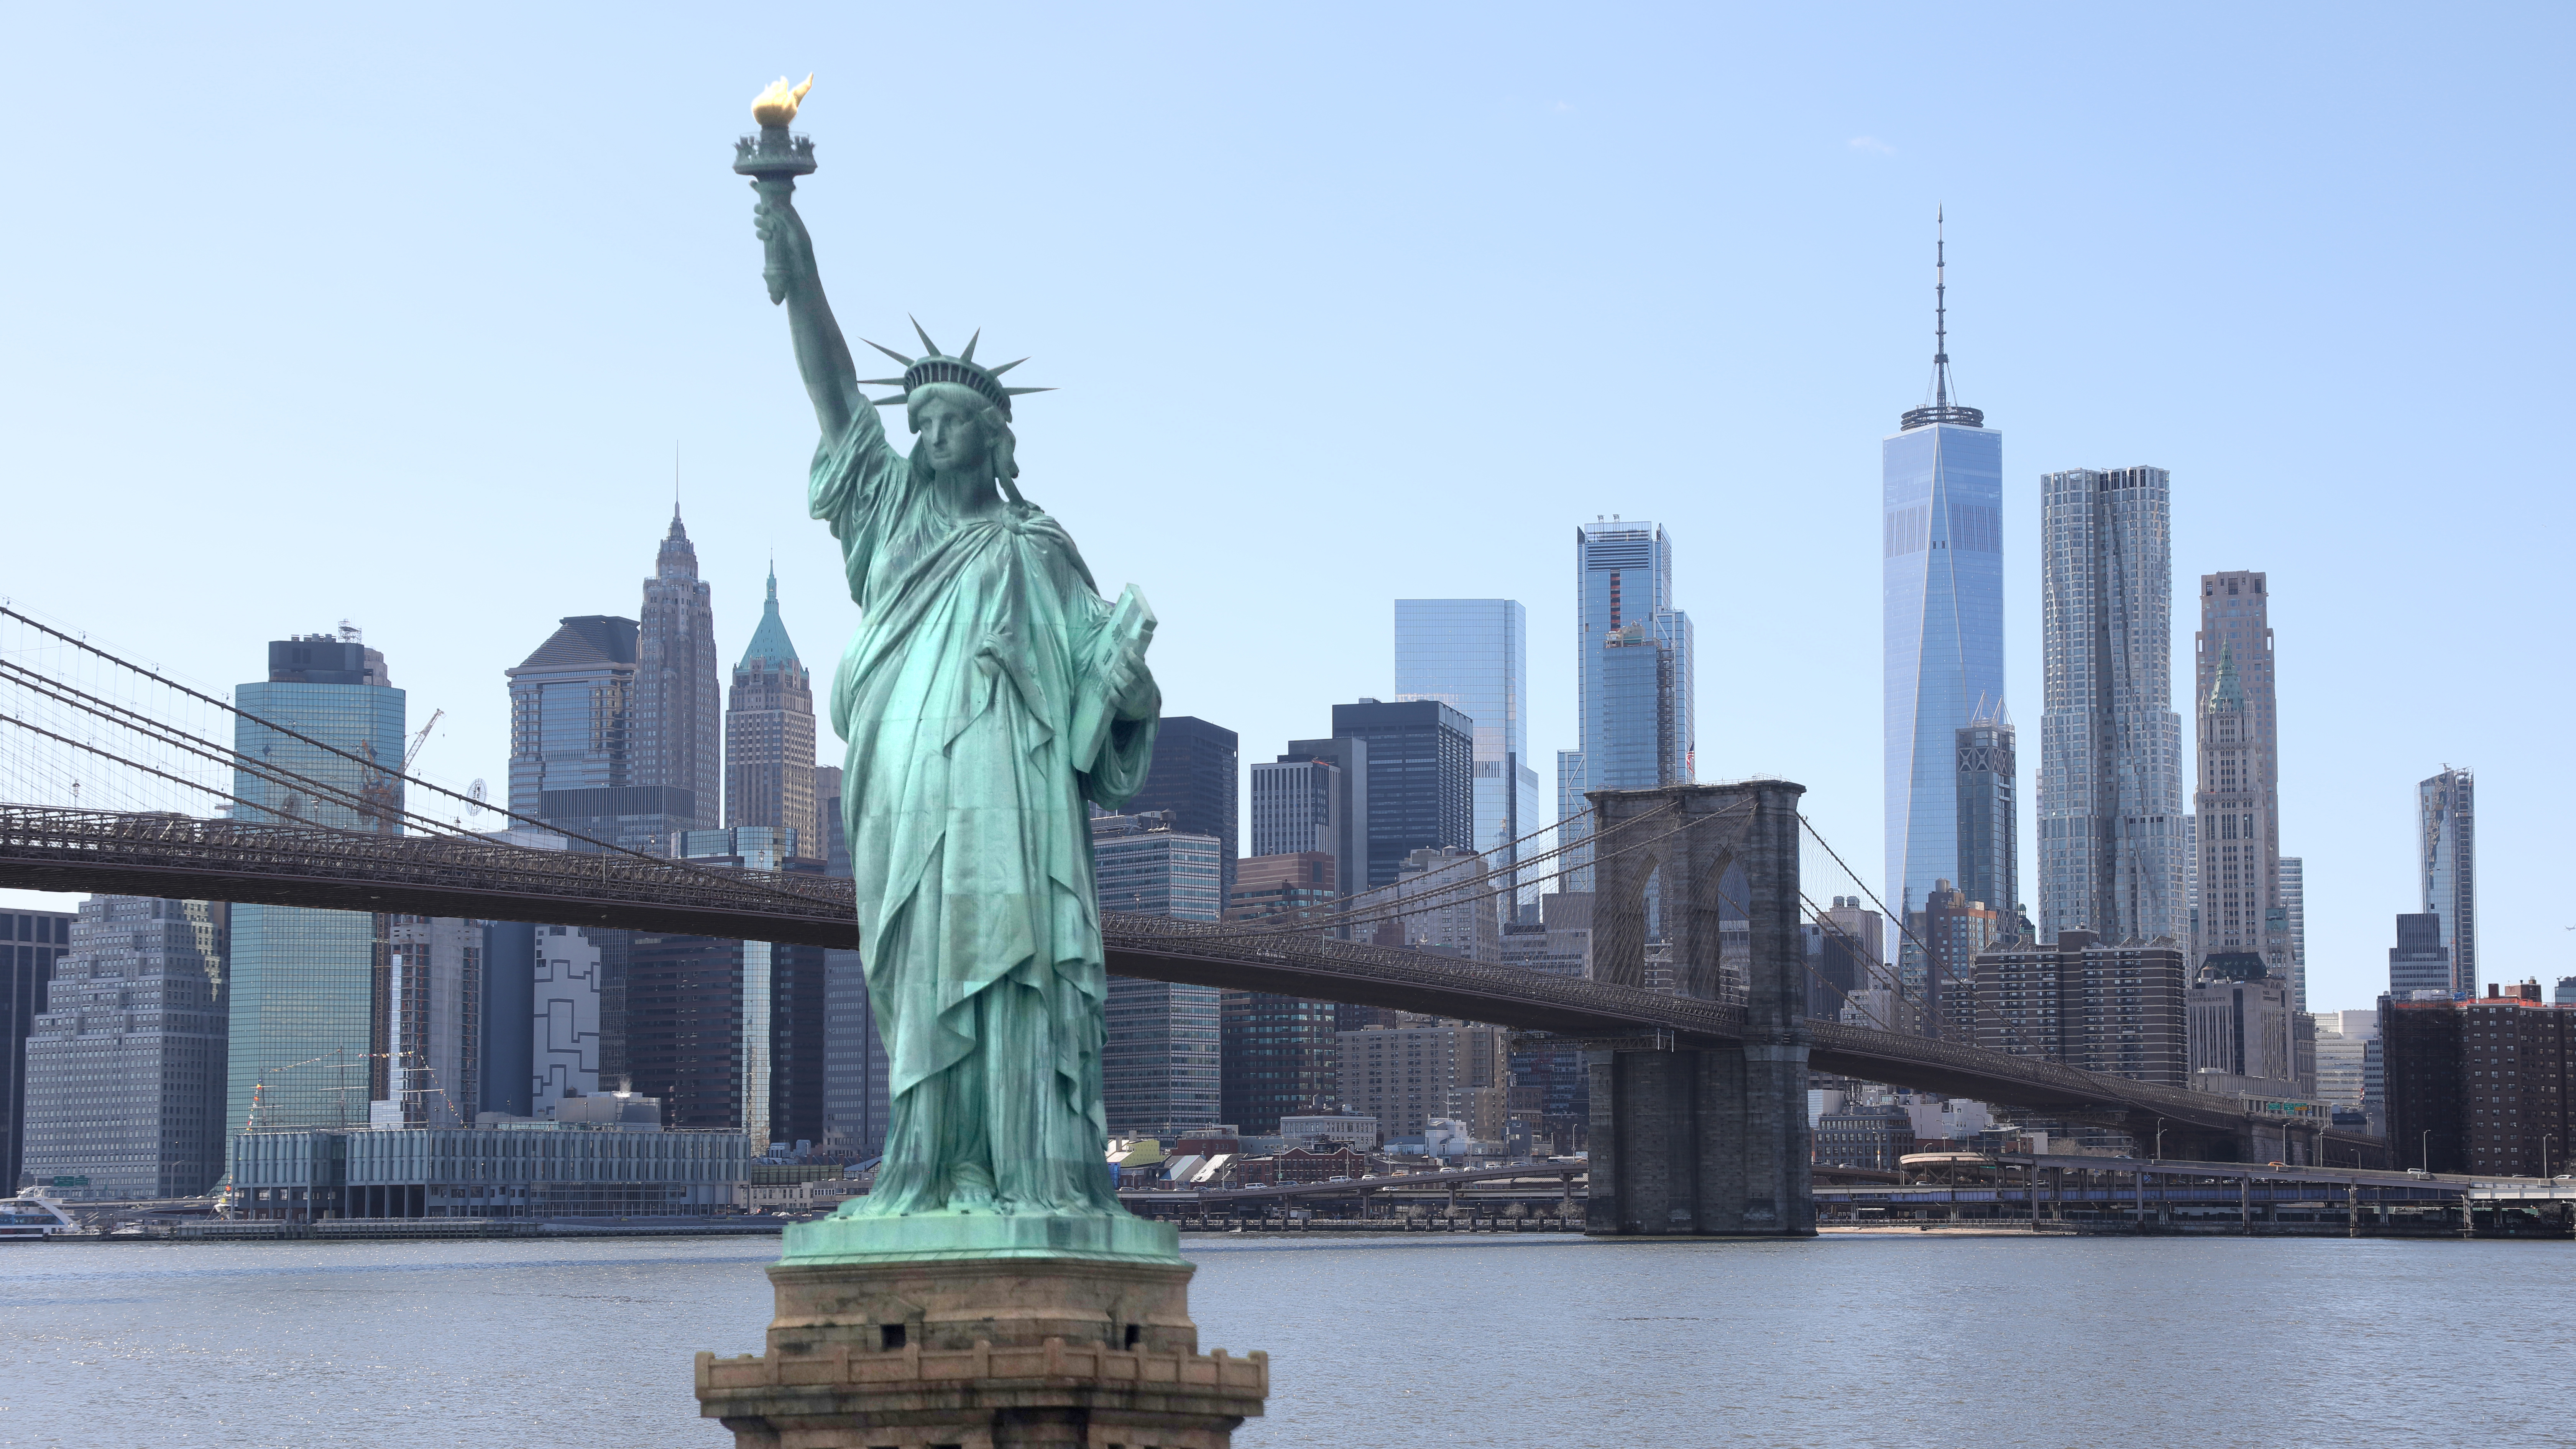 WIN a deluxe trip for two to New York City